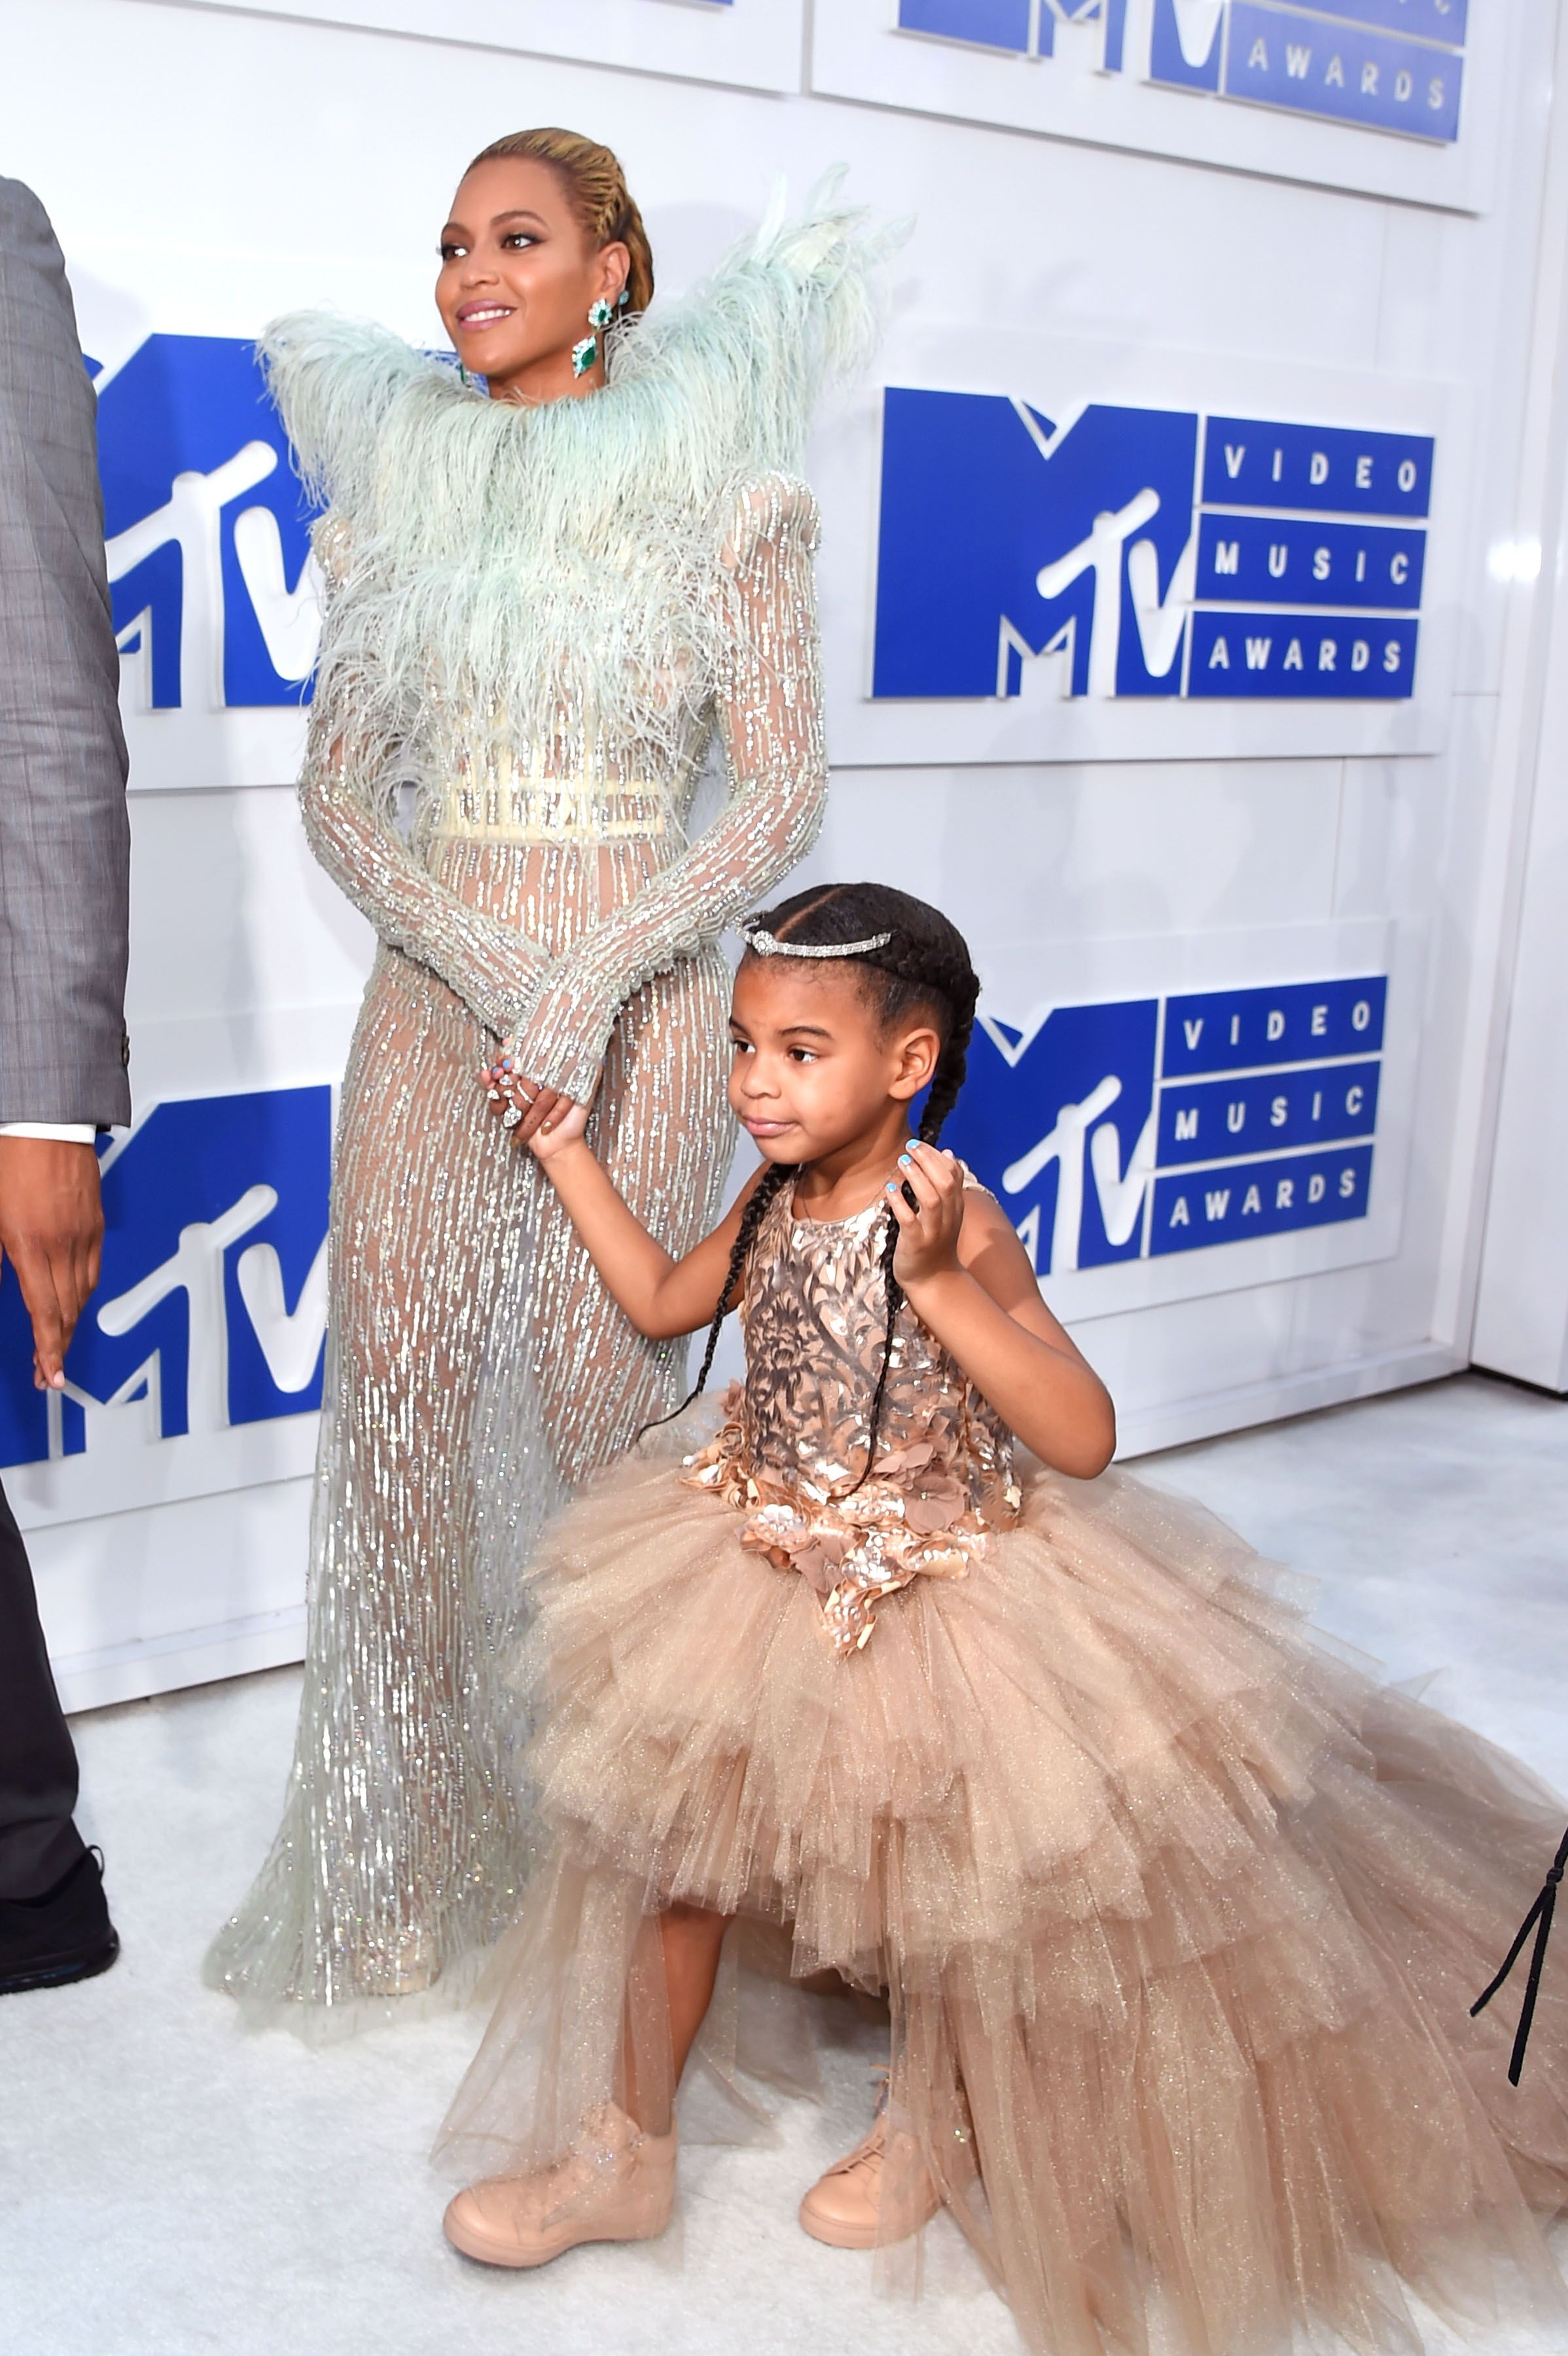 Beyoncé and Blue Ivy at the 2016 MTV Video Music Awards in New York in 2016 | Source: Getty Images